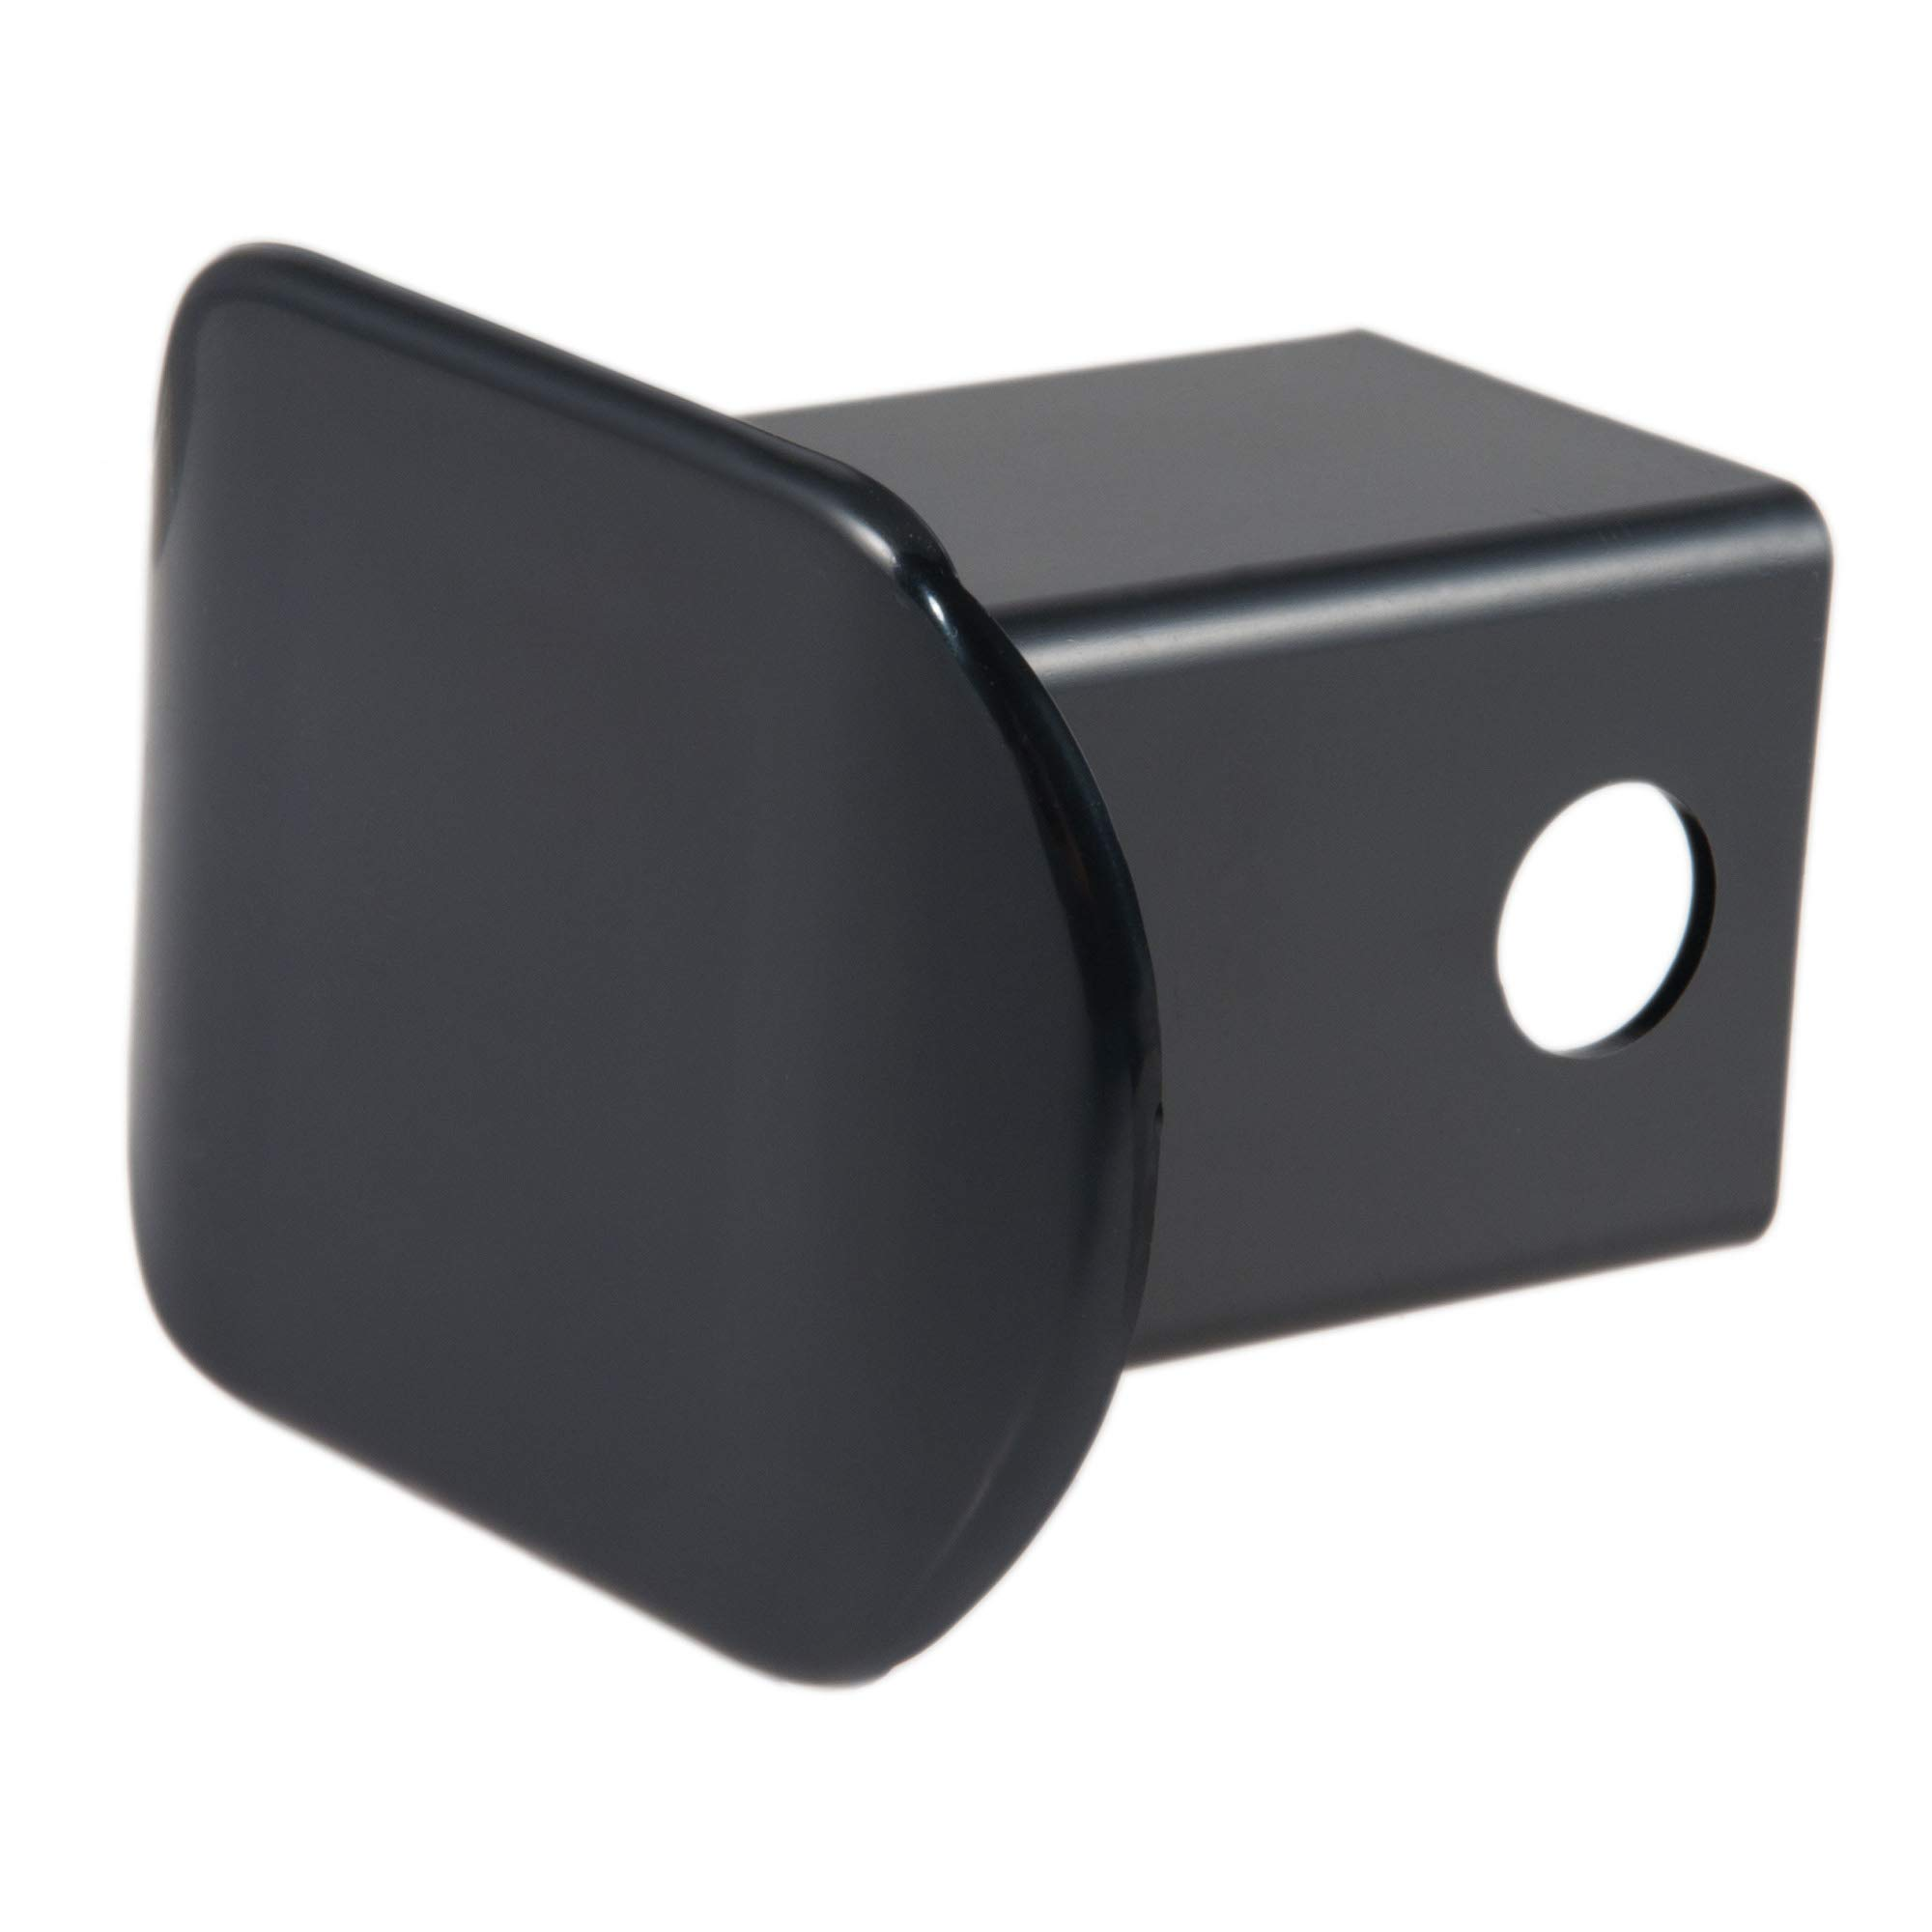 CURT 22180 Black Plastic Trailer Hitch Cover, Fits 2-Inch Receiver